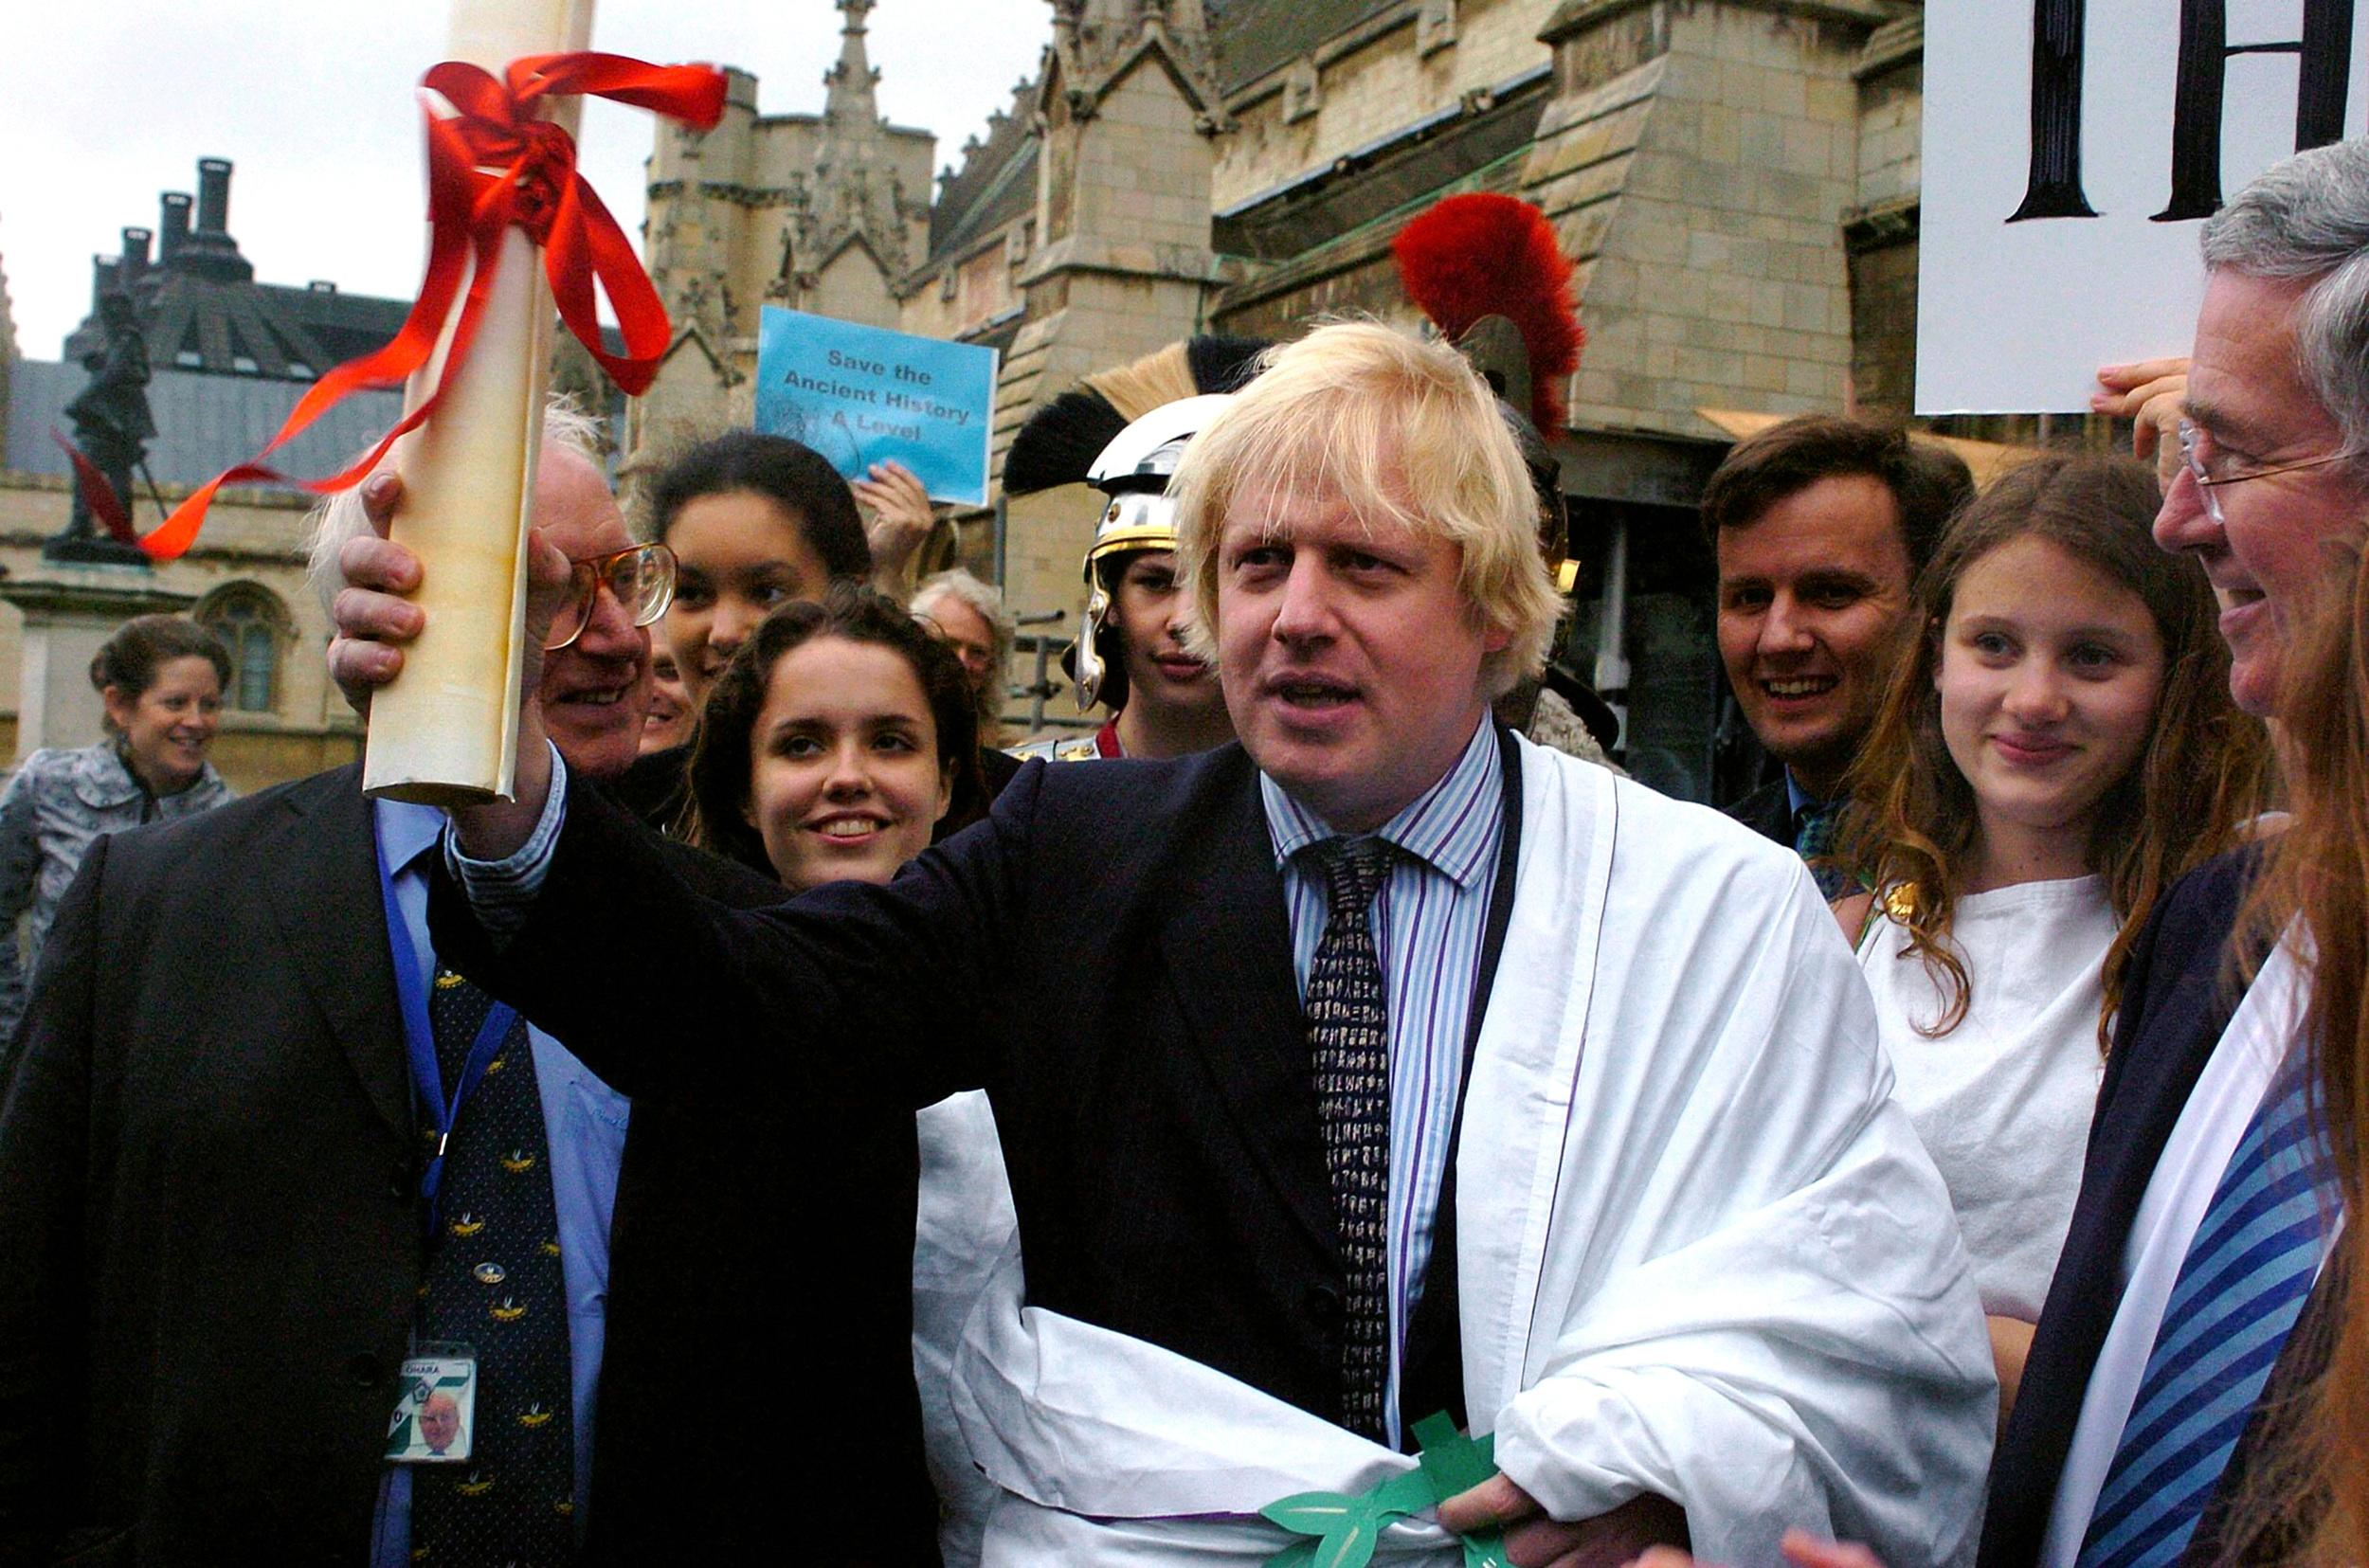 Boris Johnson MP addresses a group of sixth form students from schools across London after being handed a petition against plans to scrap the last remaining ancient history A-level outside the House of Commons, London.